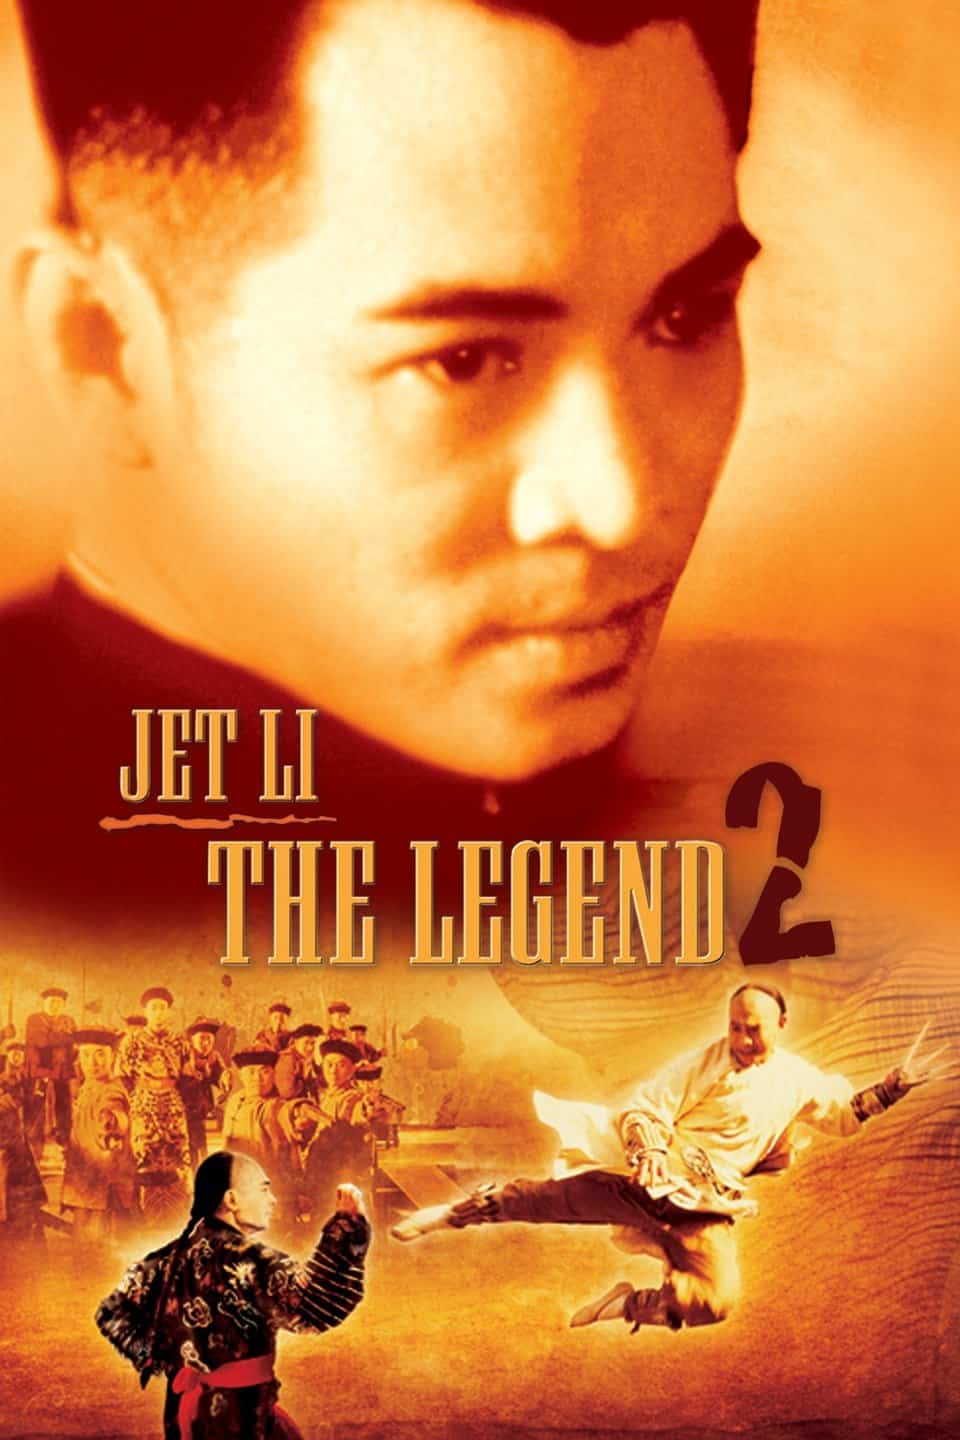 The Legend, 1993